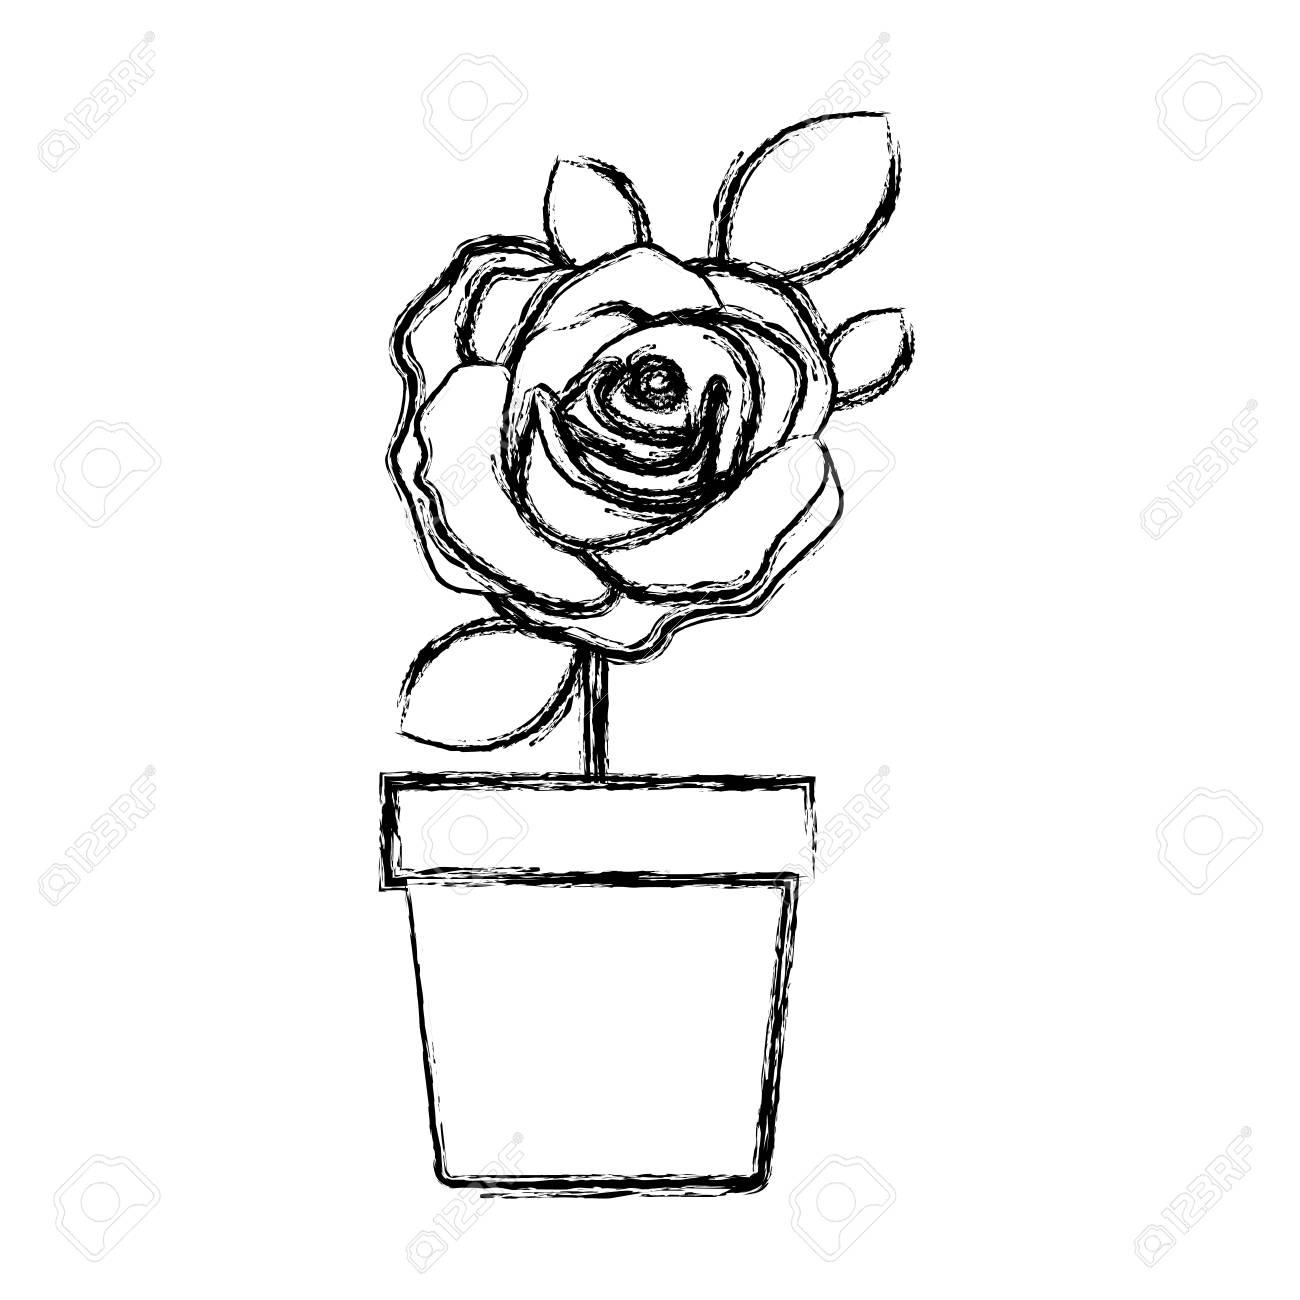 1300x1300 Blurred Silhouette Flowered Rose With Leaves And Stem In Flowerpot